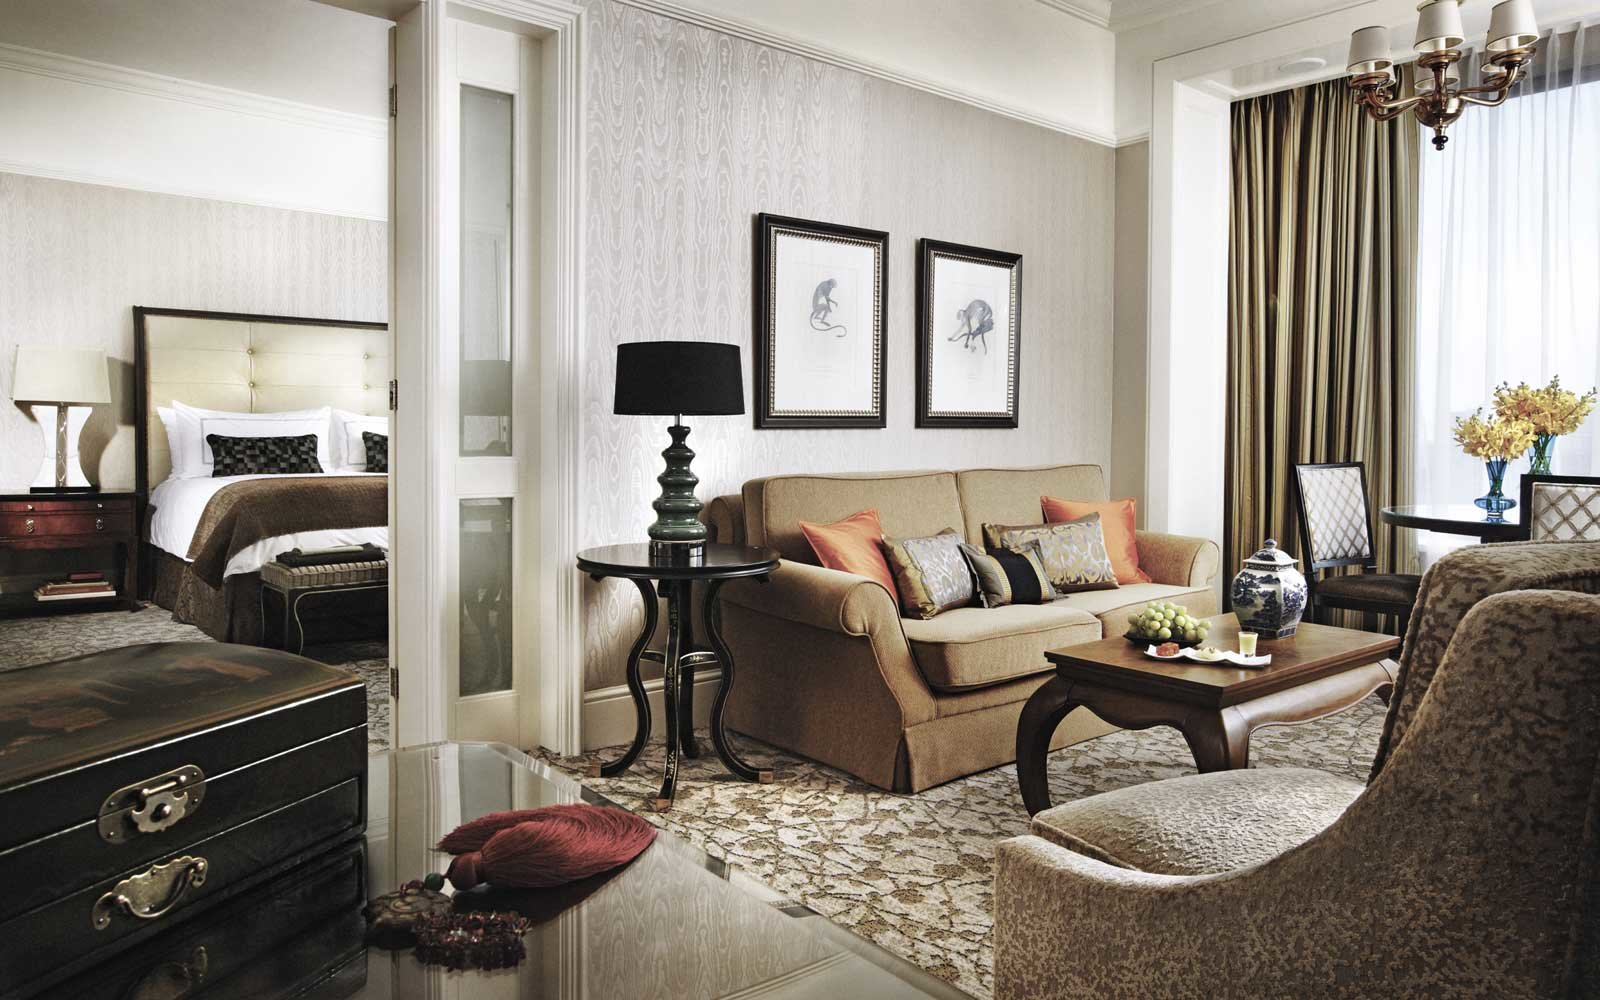 Room at the Four Seasons Hotel Singapore